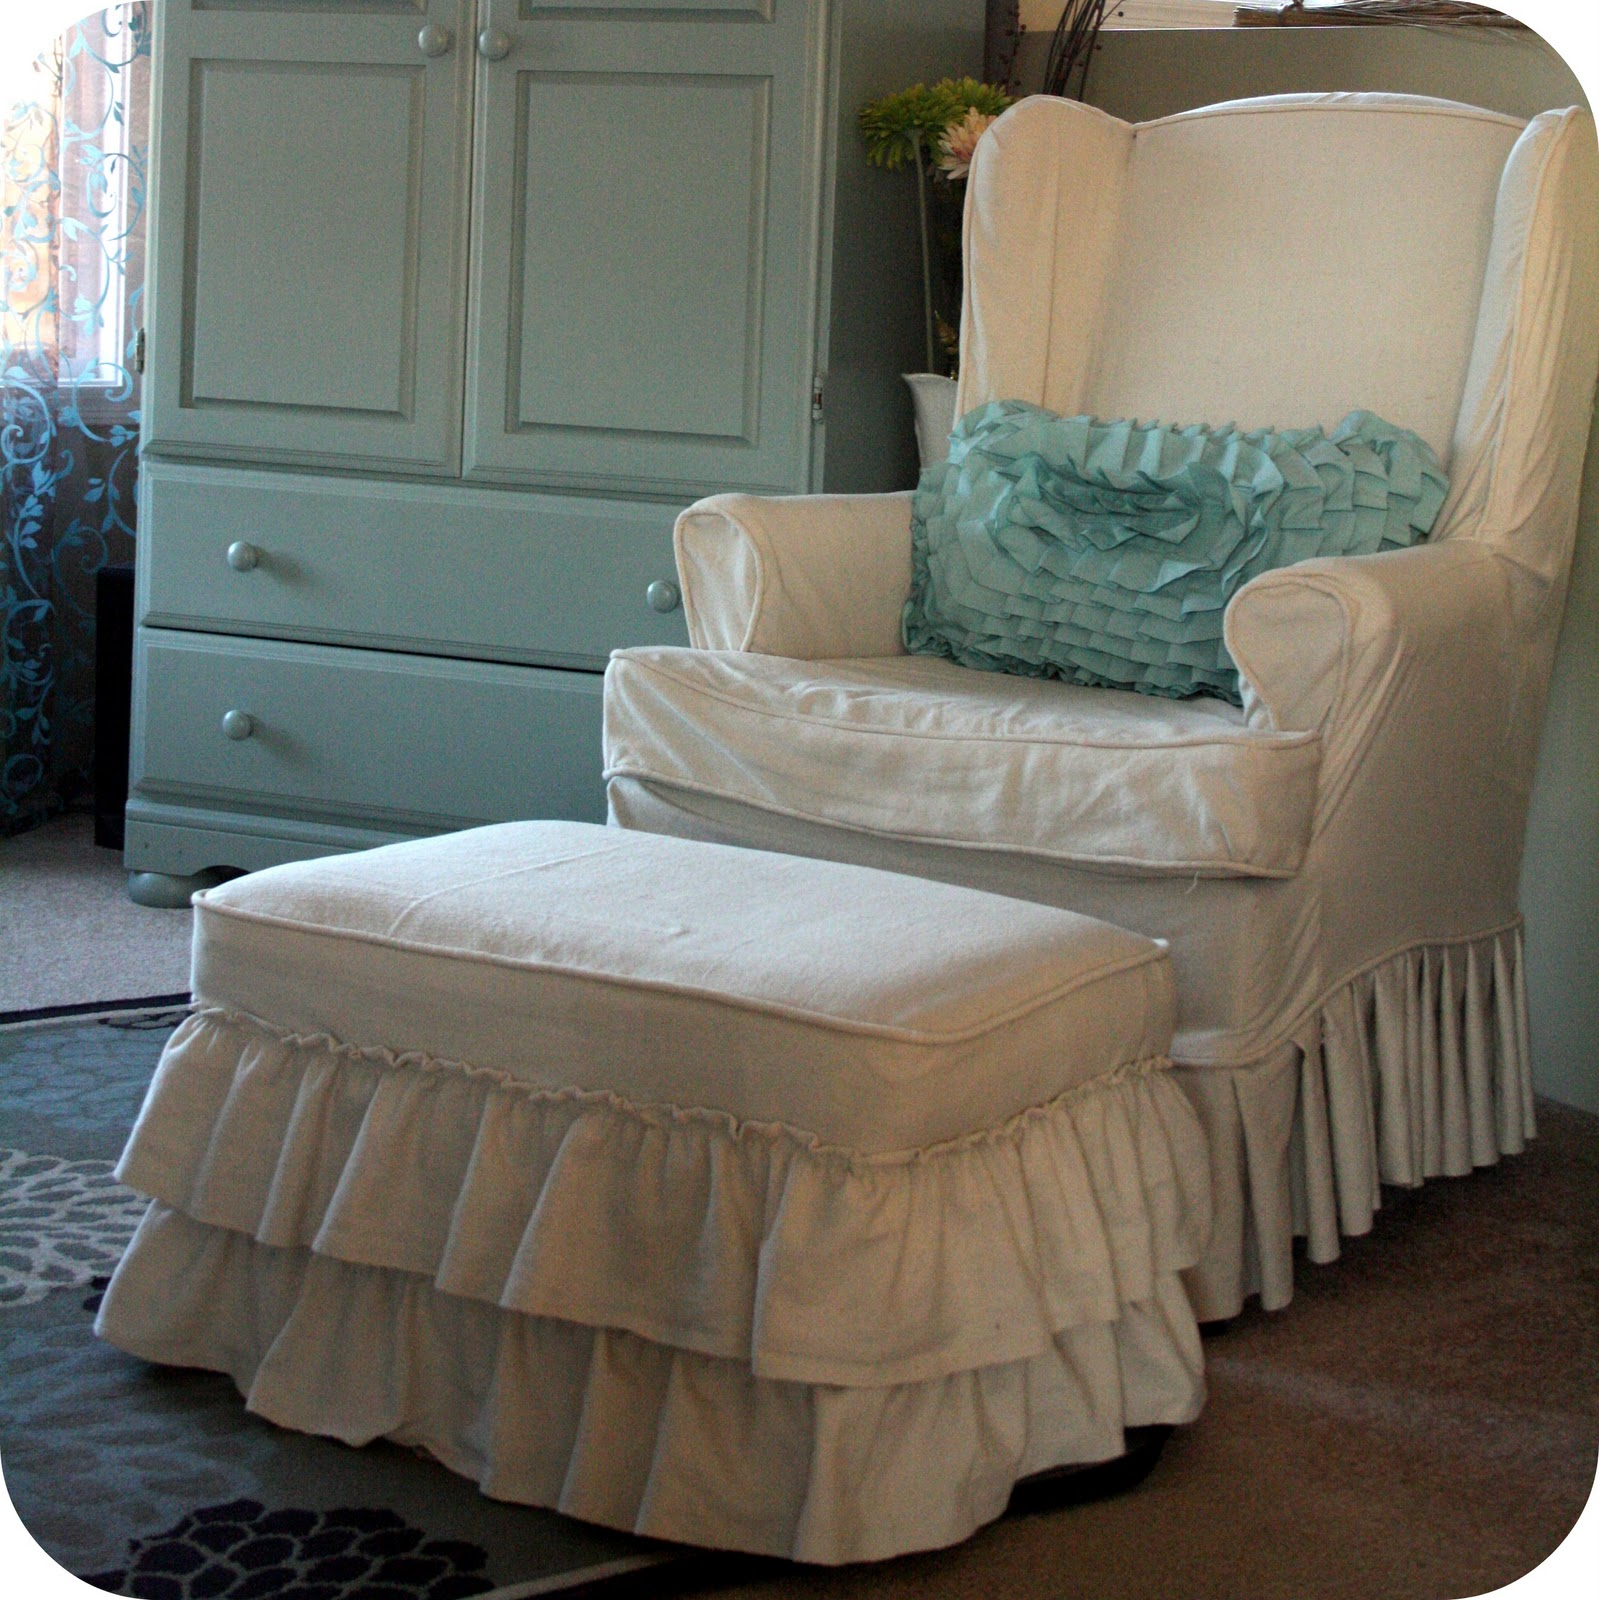 Sure Fit Ottoman Covers | Oversized Chair Slipcover | Walmart Slipcovers